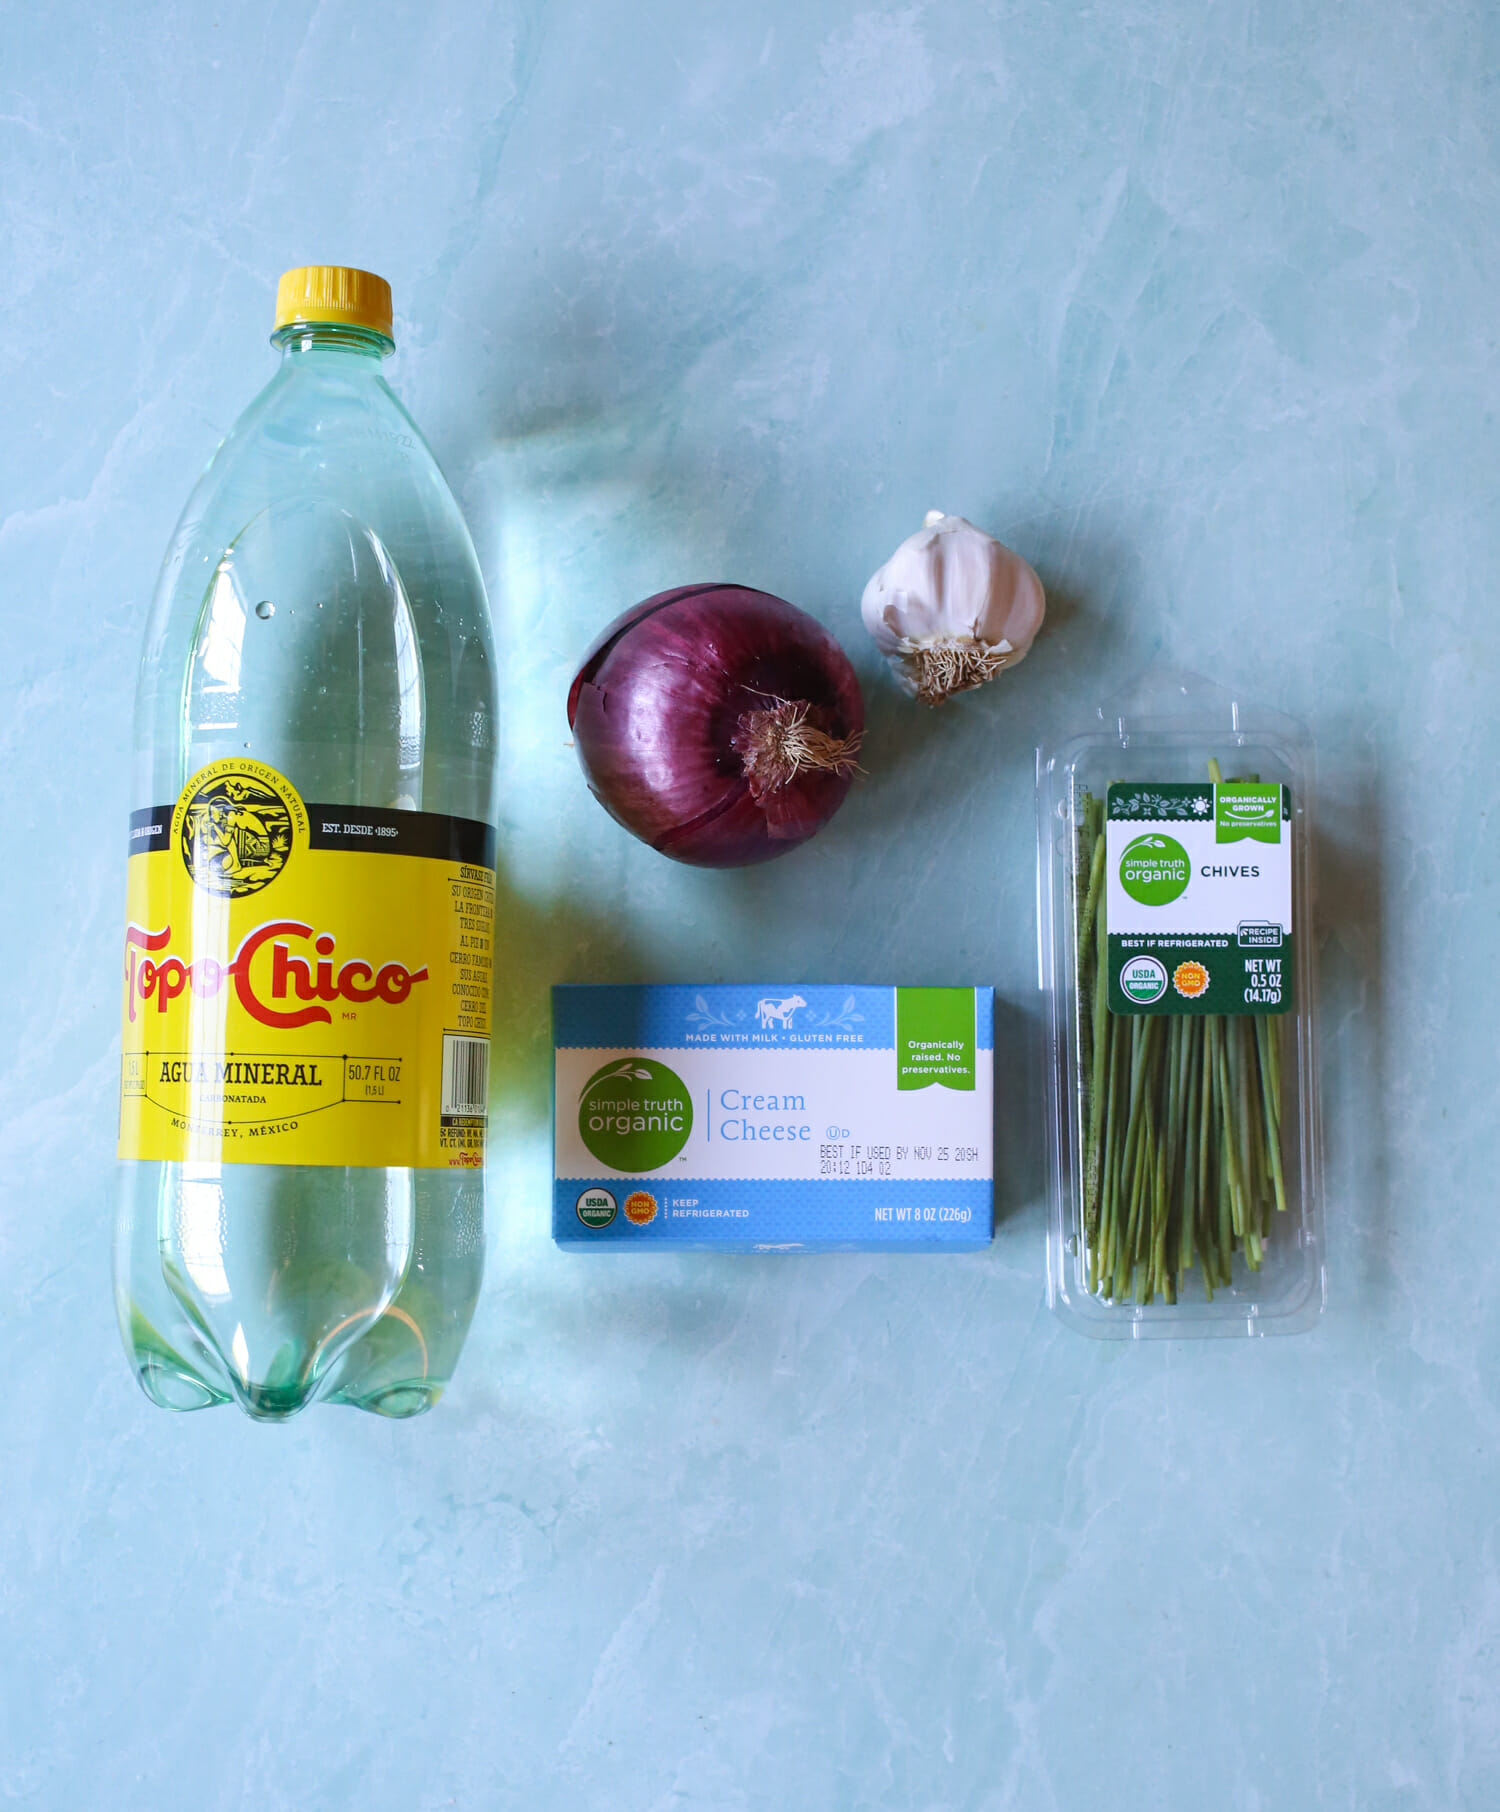 ingredients for deli style whipped cream cheese